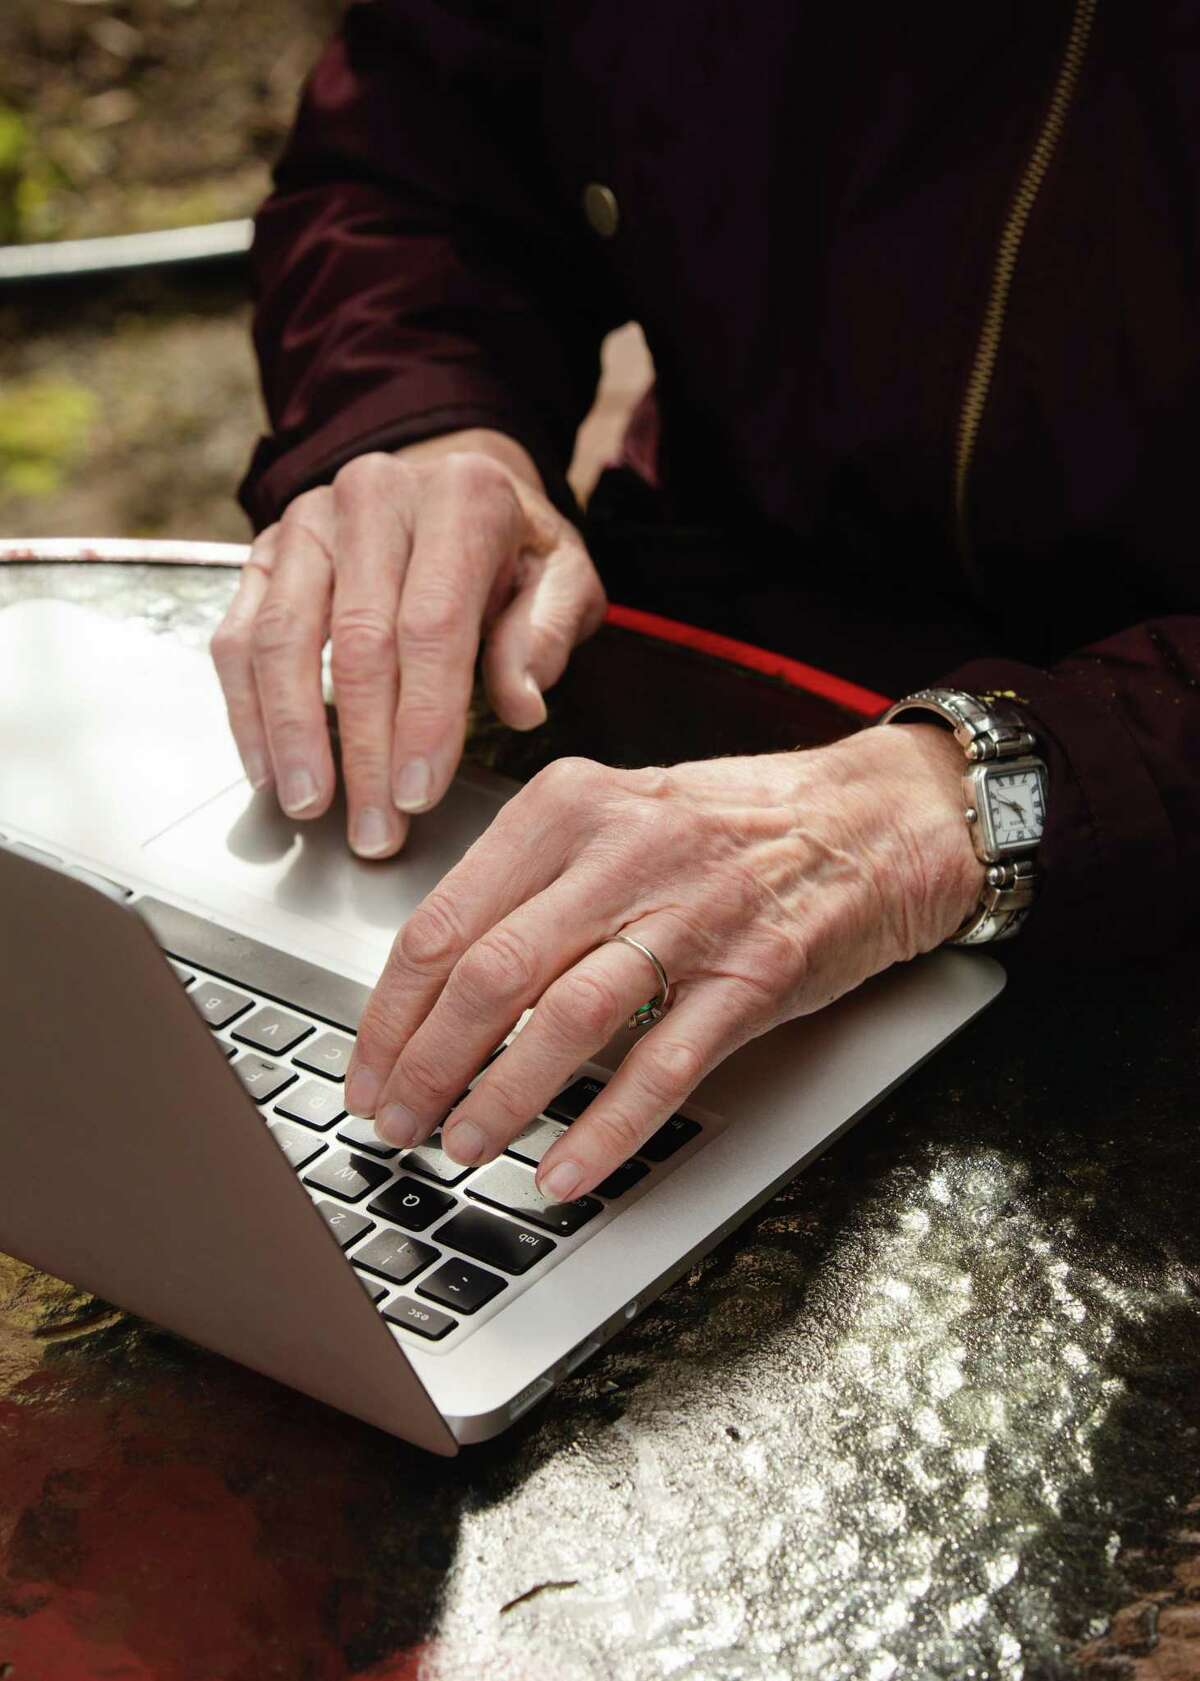 An overwhelming number of seniors in San Antonio saw the social divide of the pandemic deepened by the digital divide. Let's step up digital training and services for seniors.